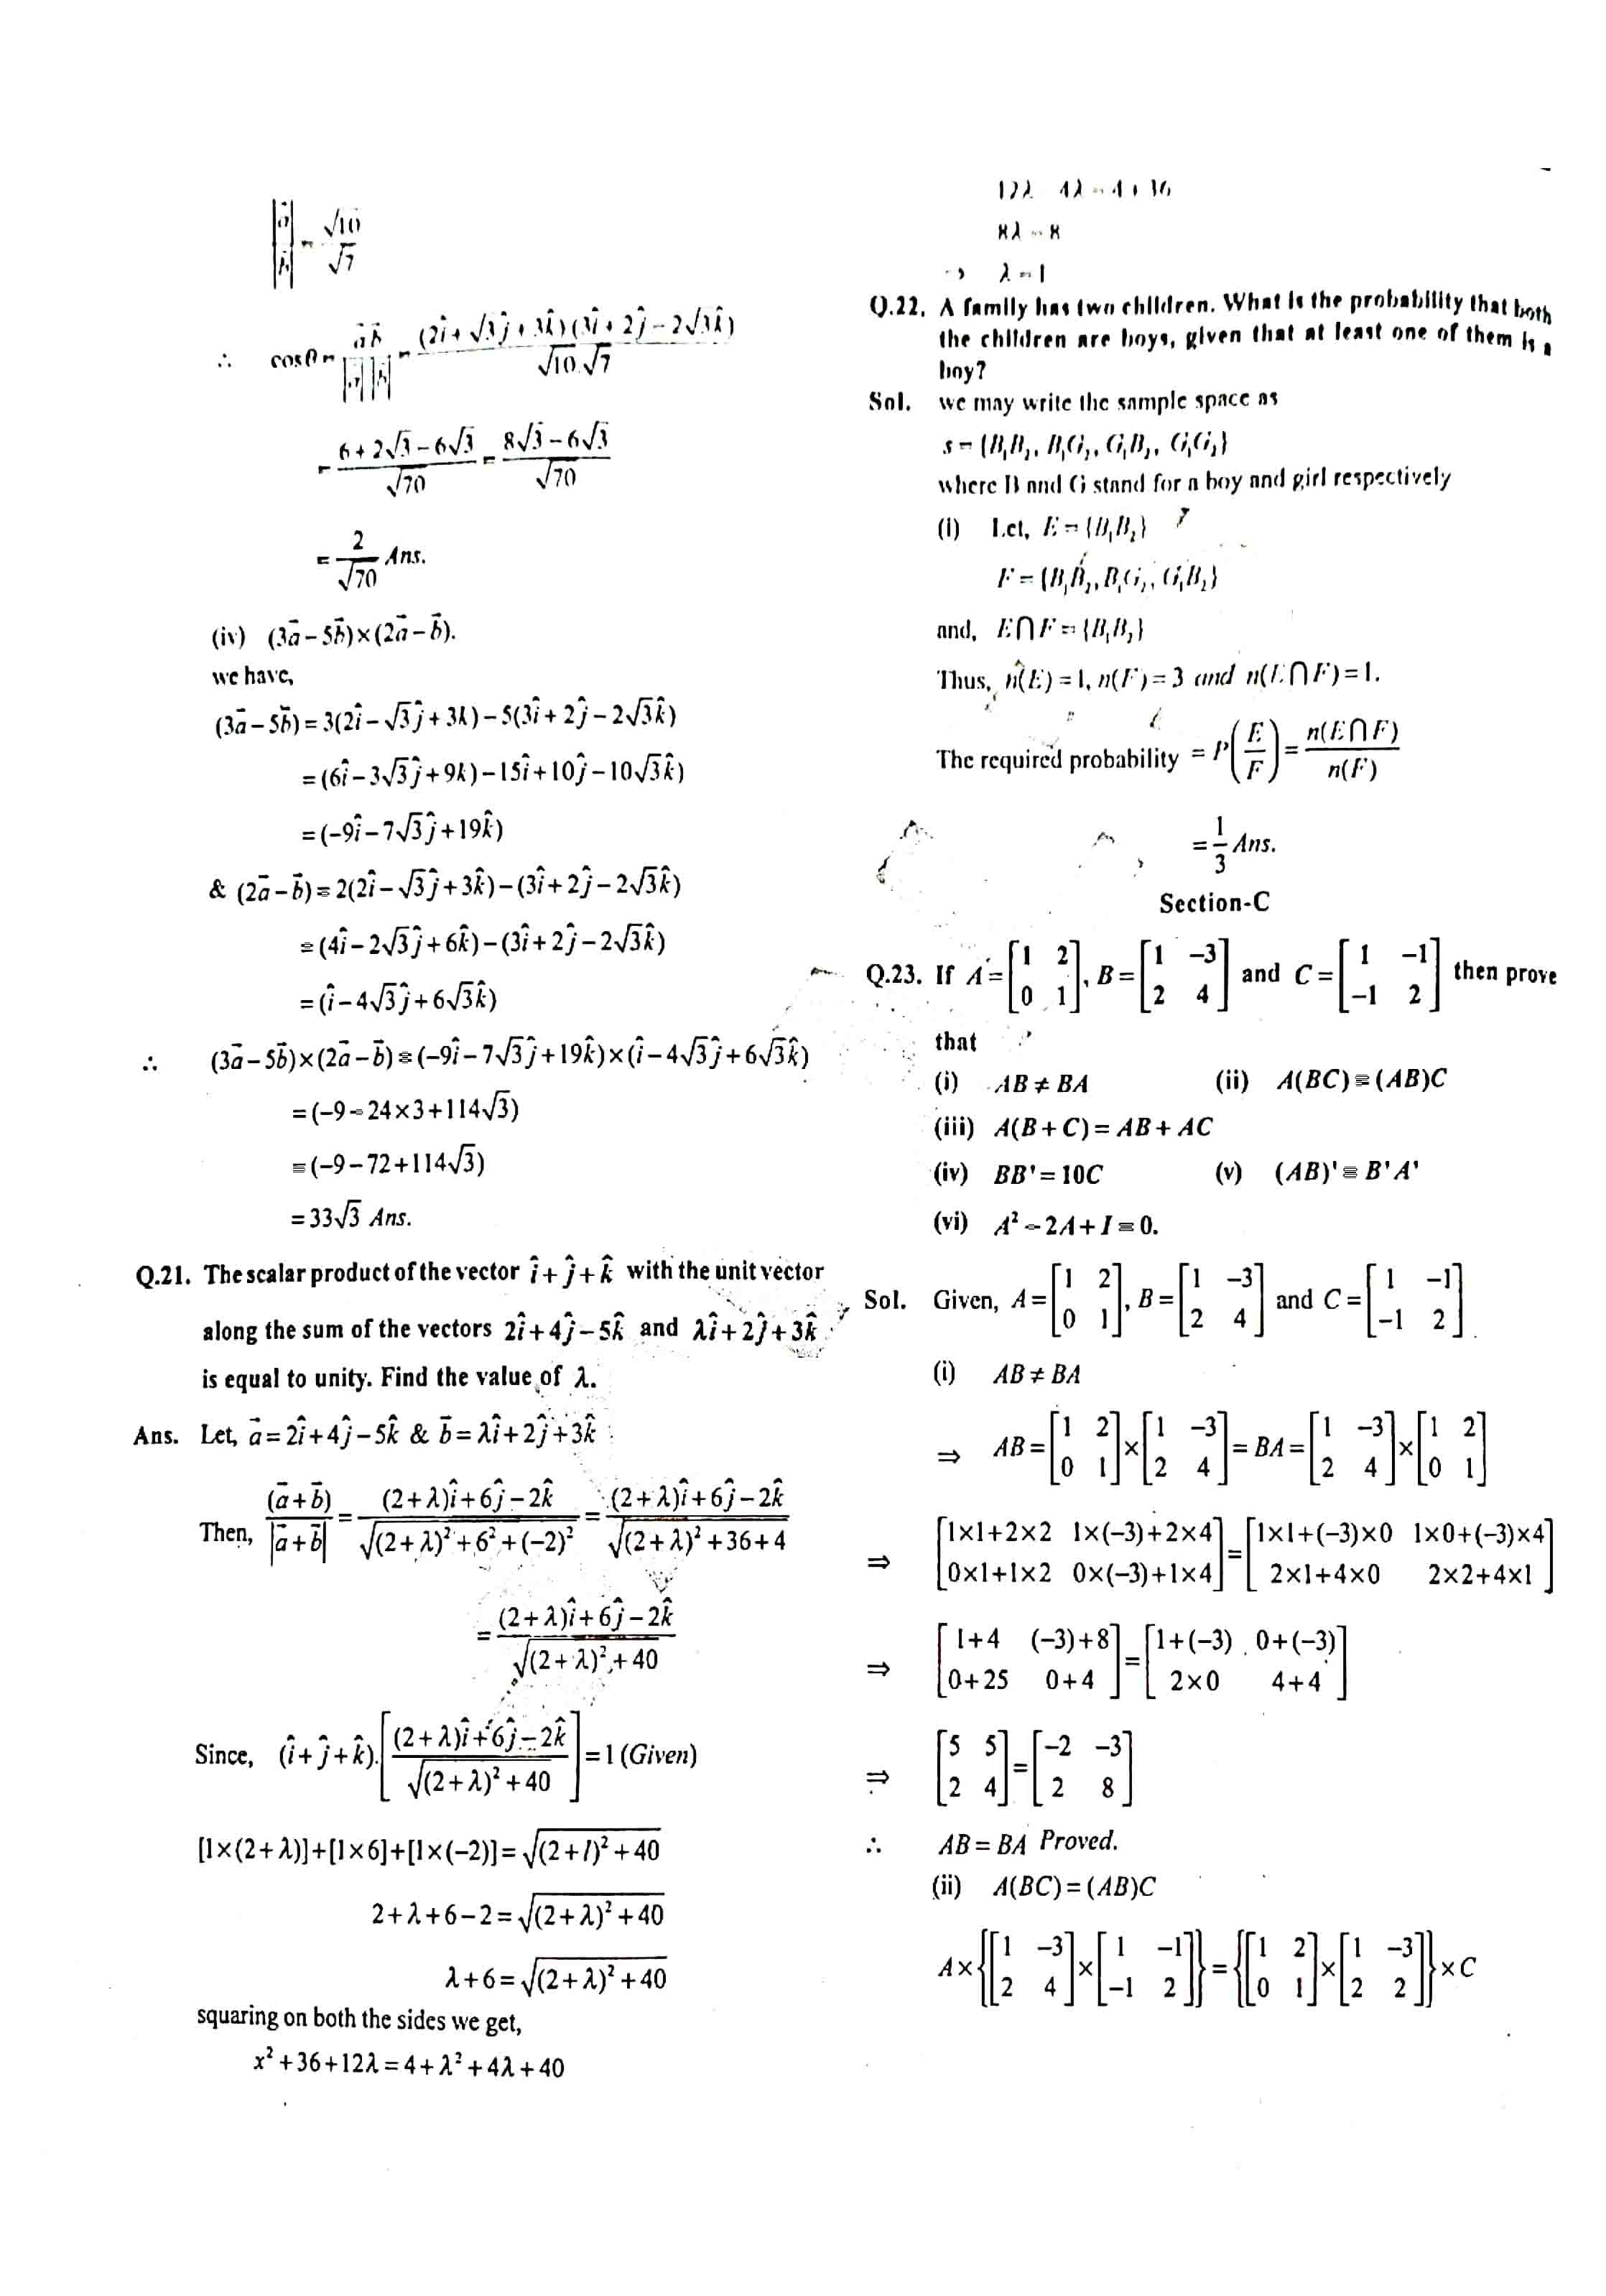 JAC Class 12 math 2016 Question Paper 05